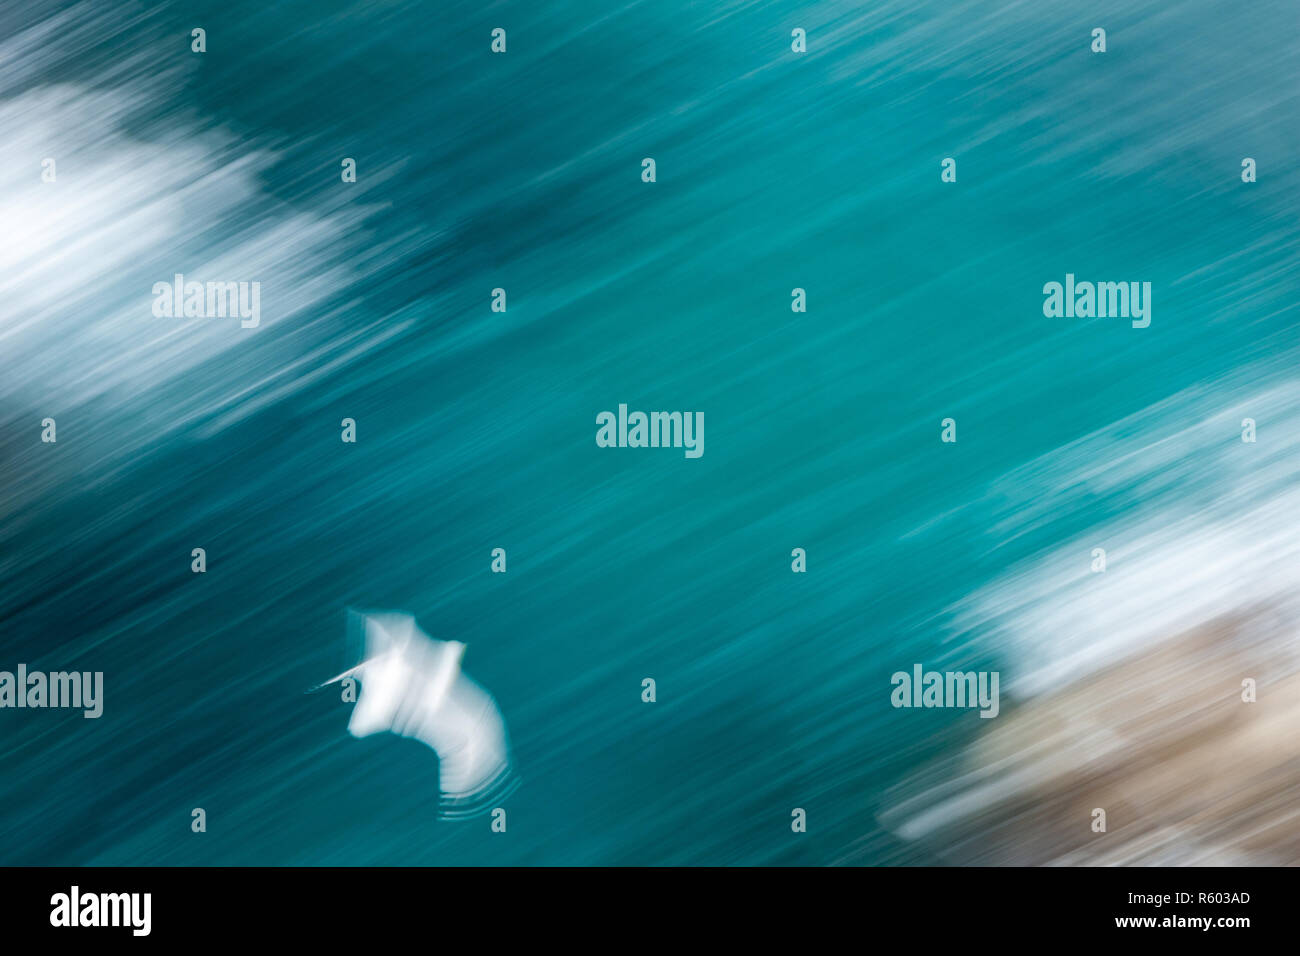 Abstract photo from a seagull from above, long exposure - Stock Image